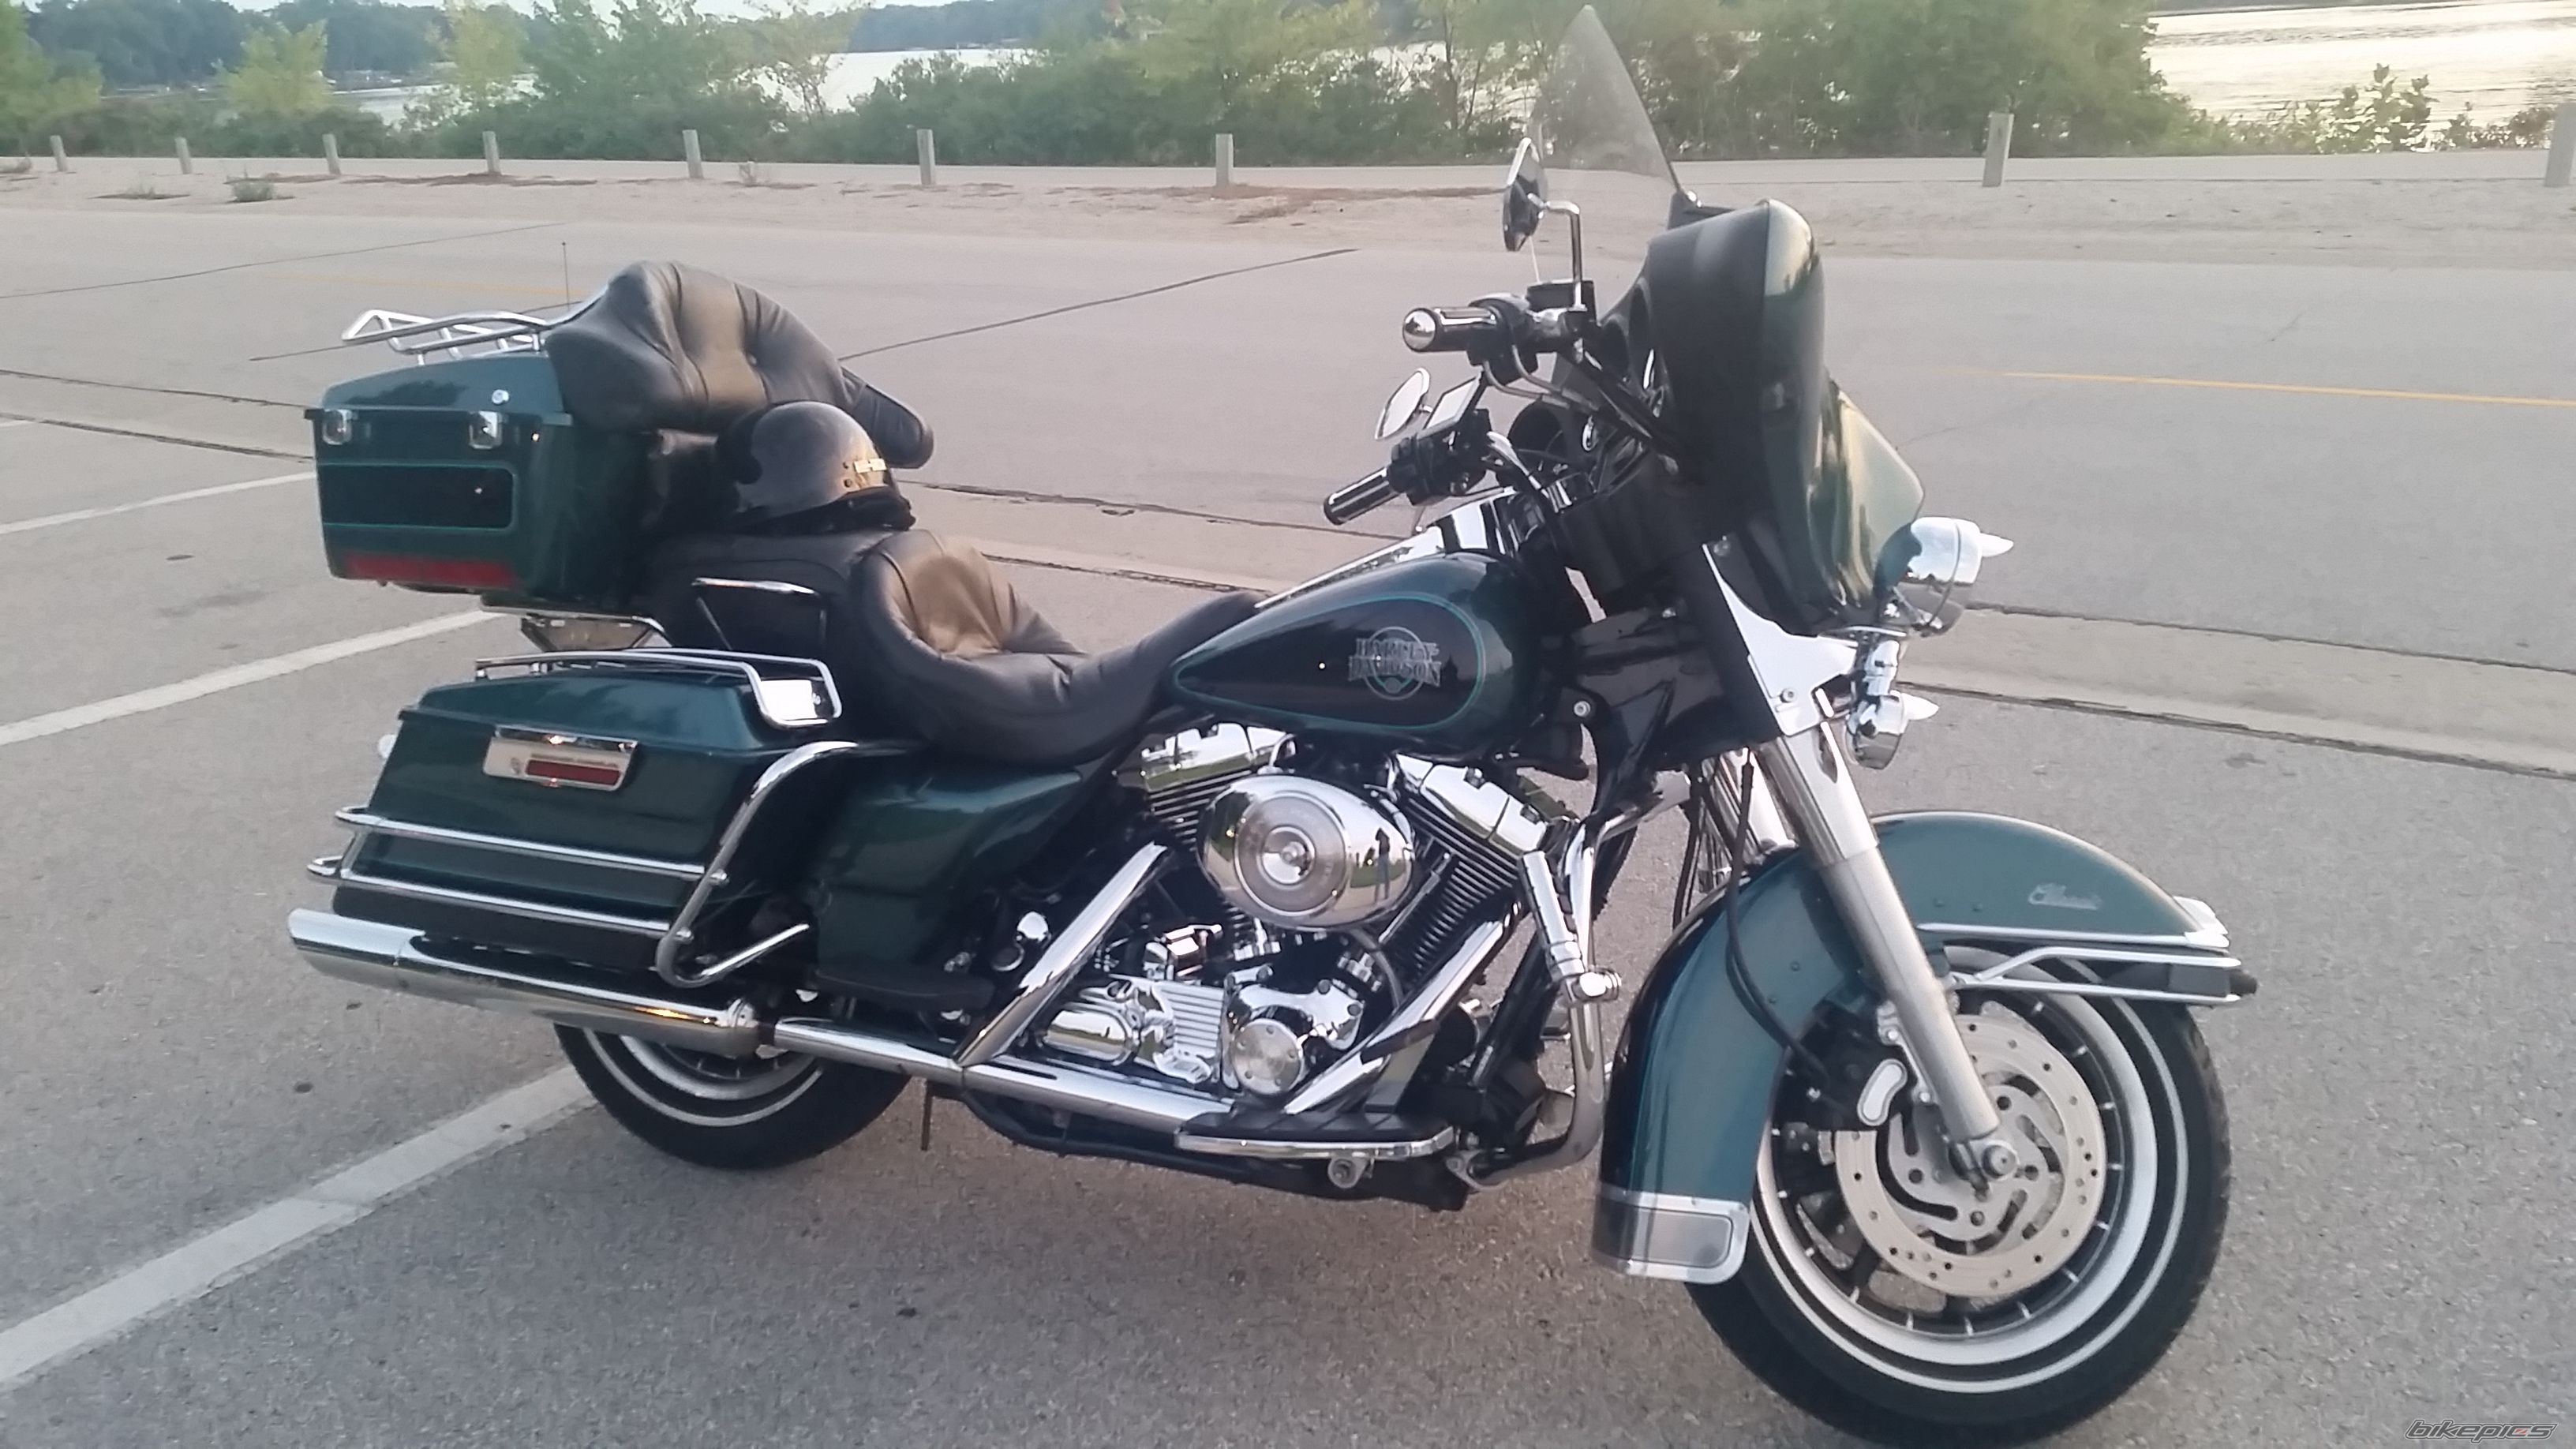 2000 HARLEY DAVIDSON ELECTRA GLIDE CLASSIC | Picture 2756141 motorcycle photo